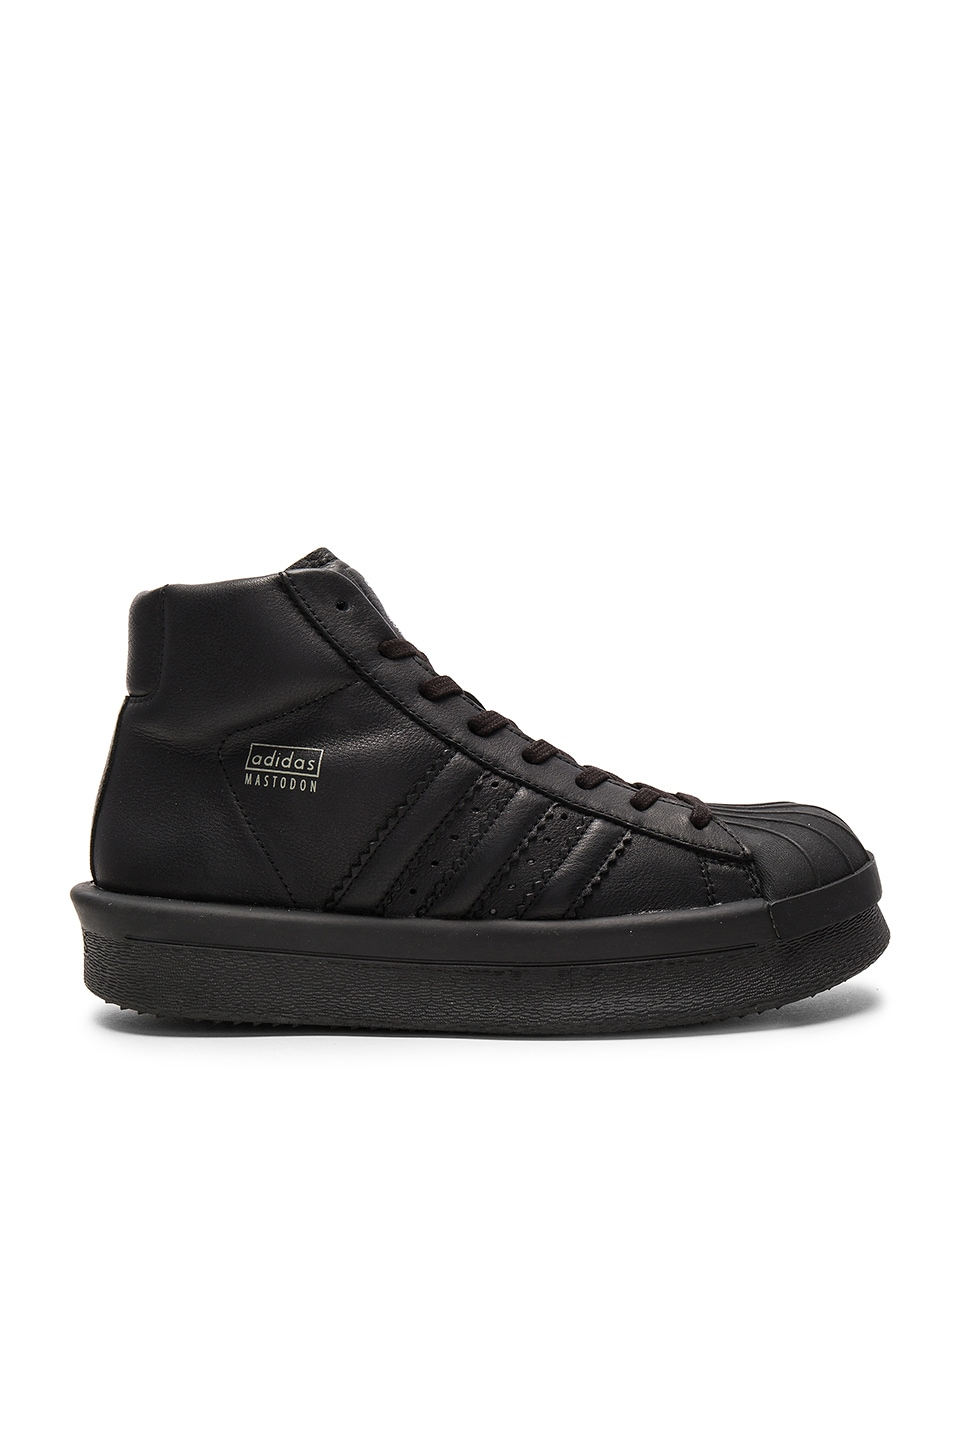 buy online adidas by rick owens pro model sneakers customer review. Black Bedroom Furniture Sets. Home Design Ideas